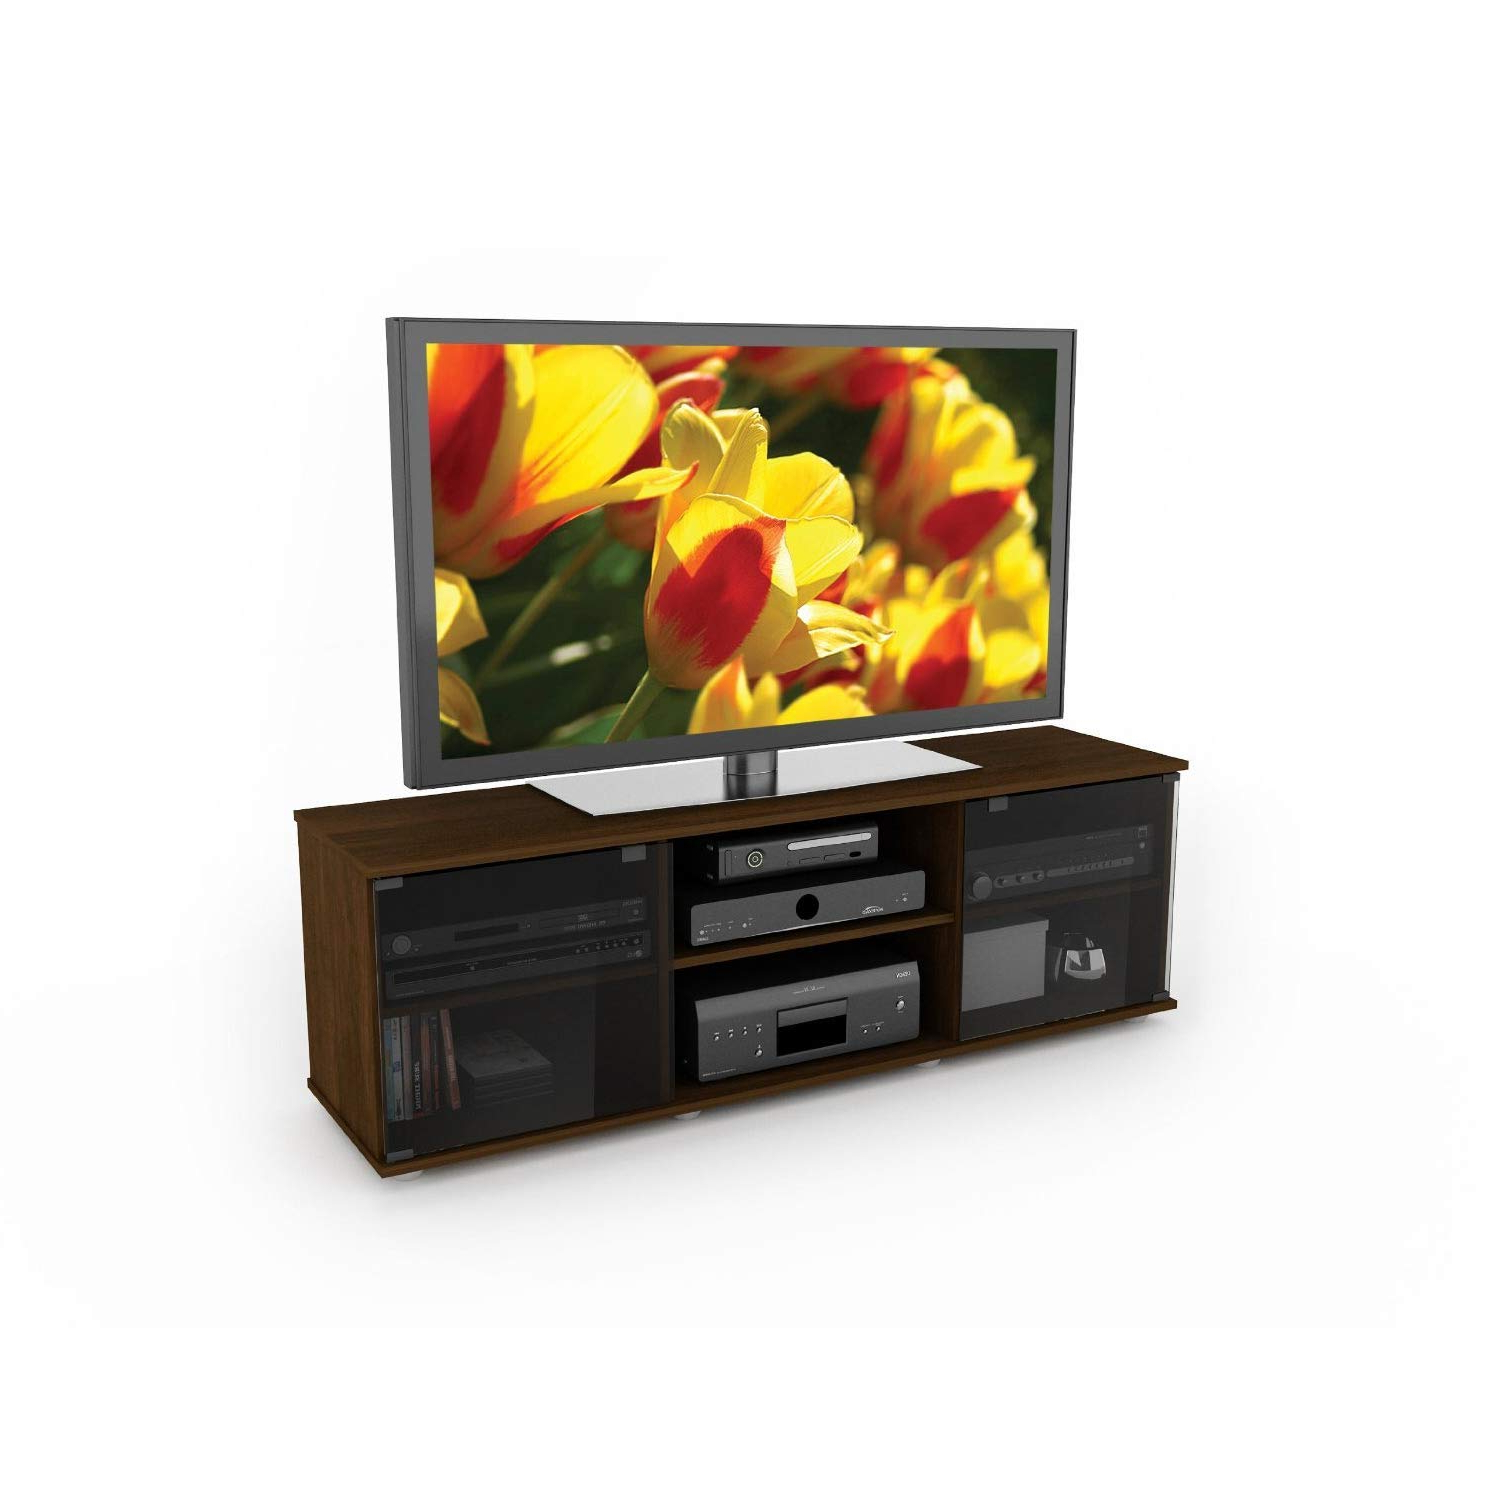 84 Inch Tv Stands With Regard To Well Known Cheap 84 Inch Tv Stand, Find 84 Inch Tv Stand Deals On Line At (Gallery 16 of 20)